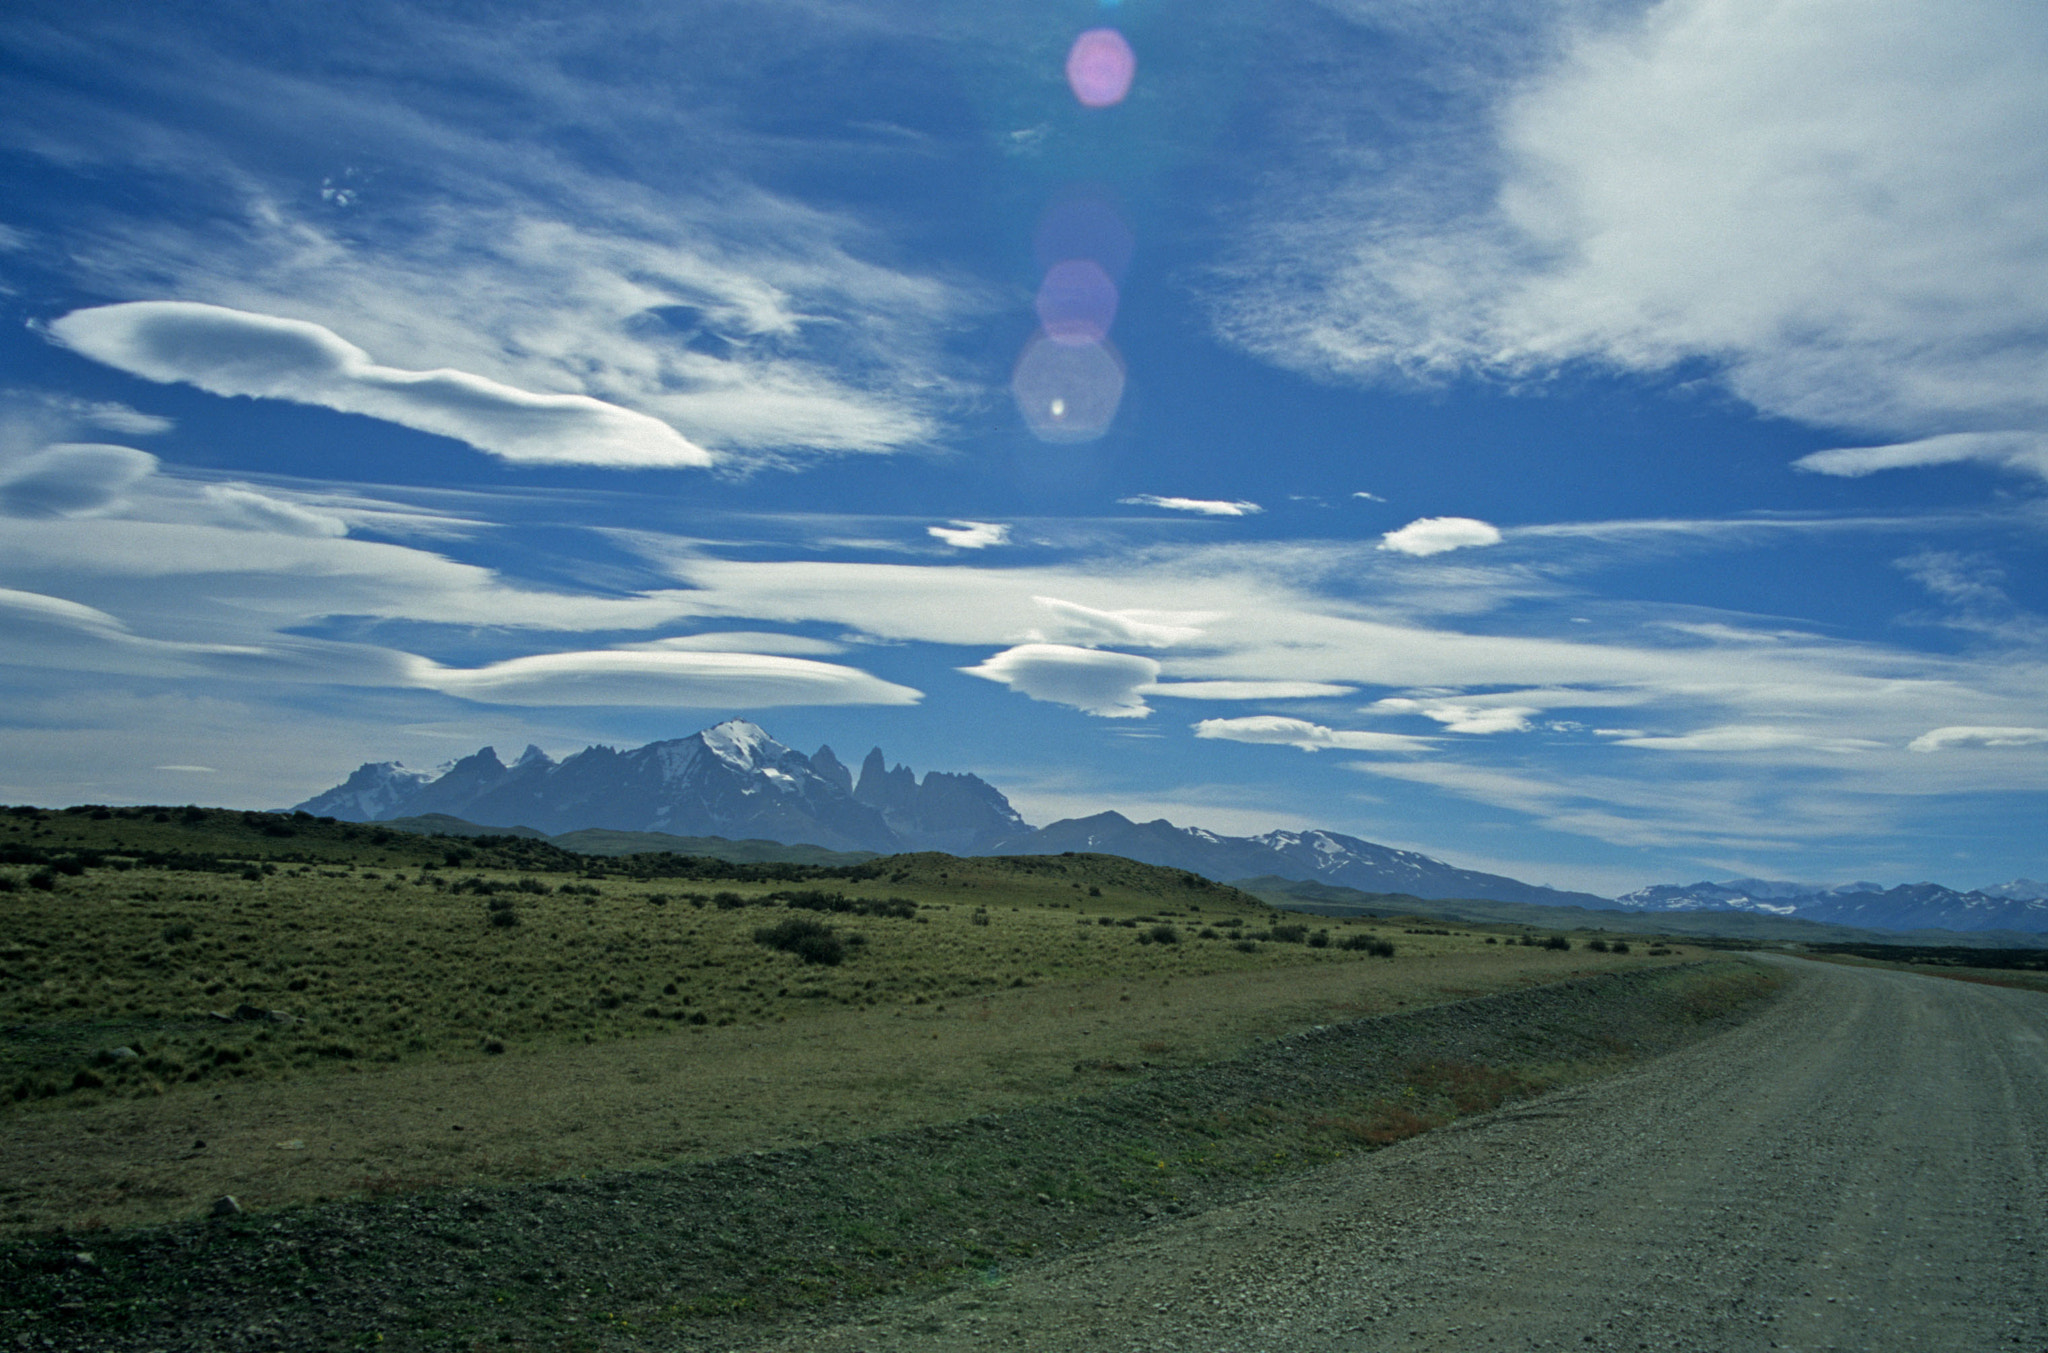 Photograph Patagonian Skies by Jim Slagle on 500px